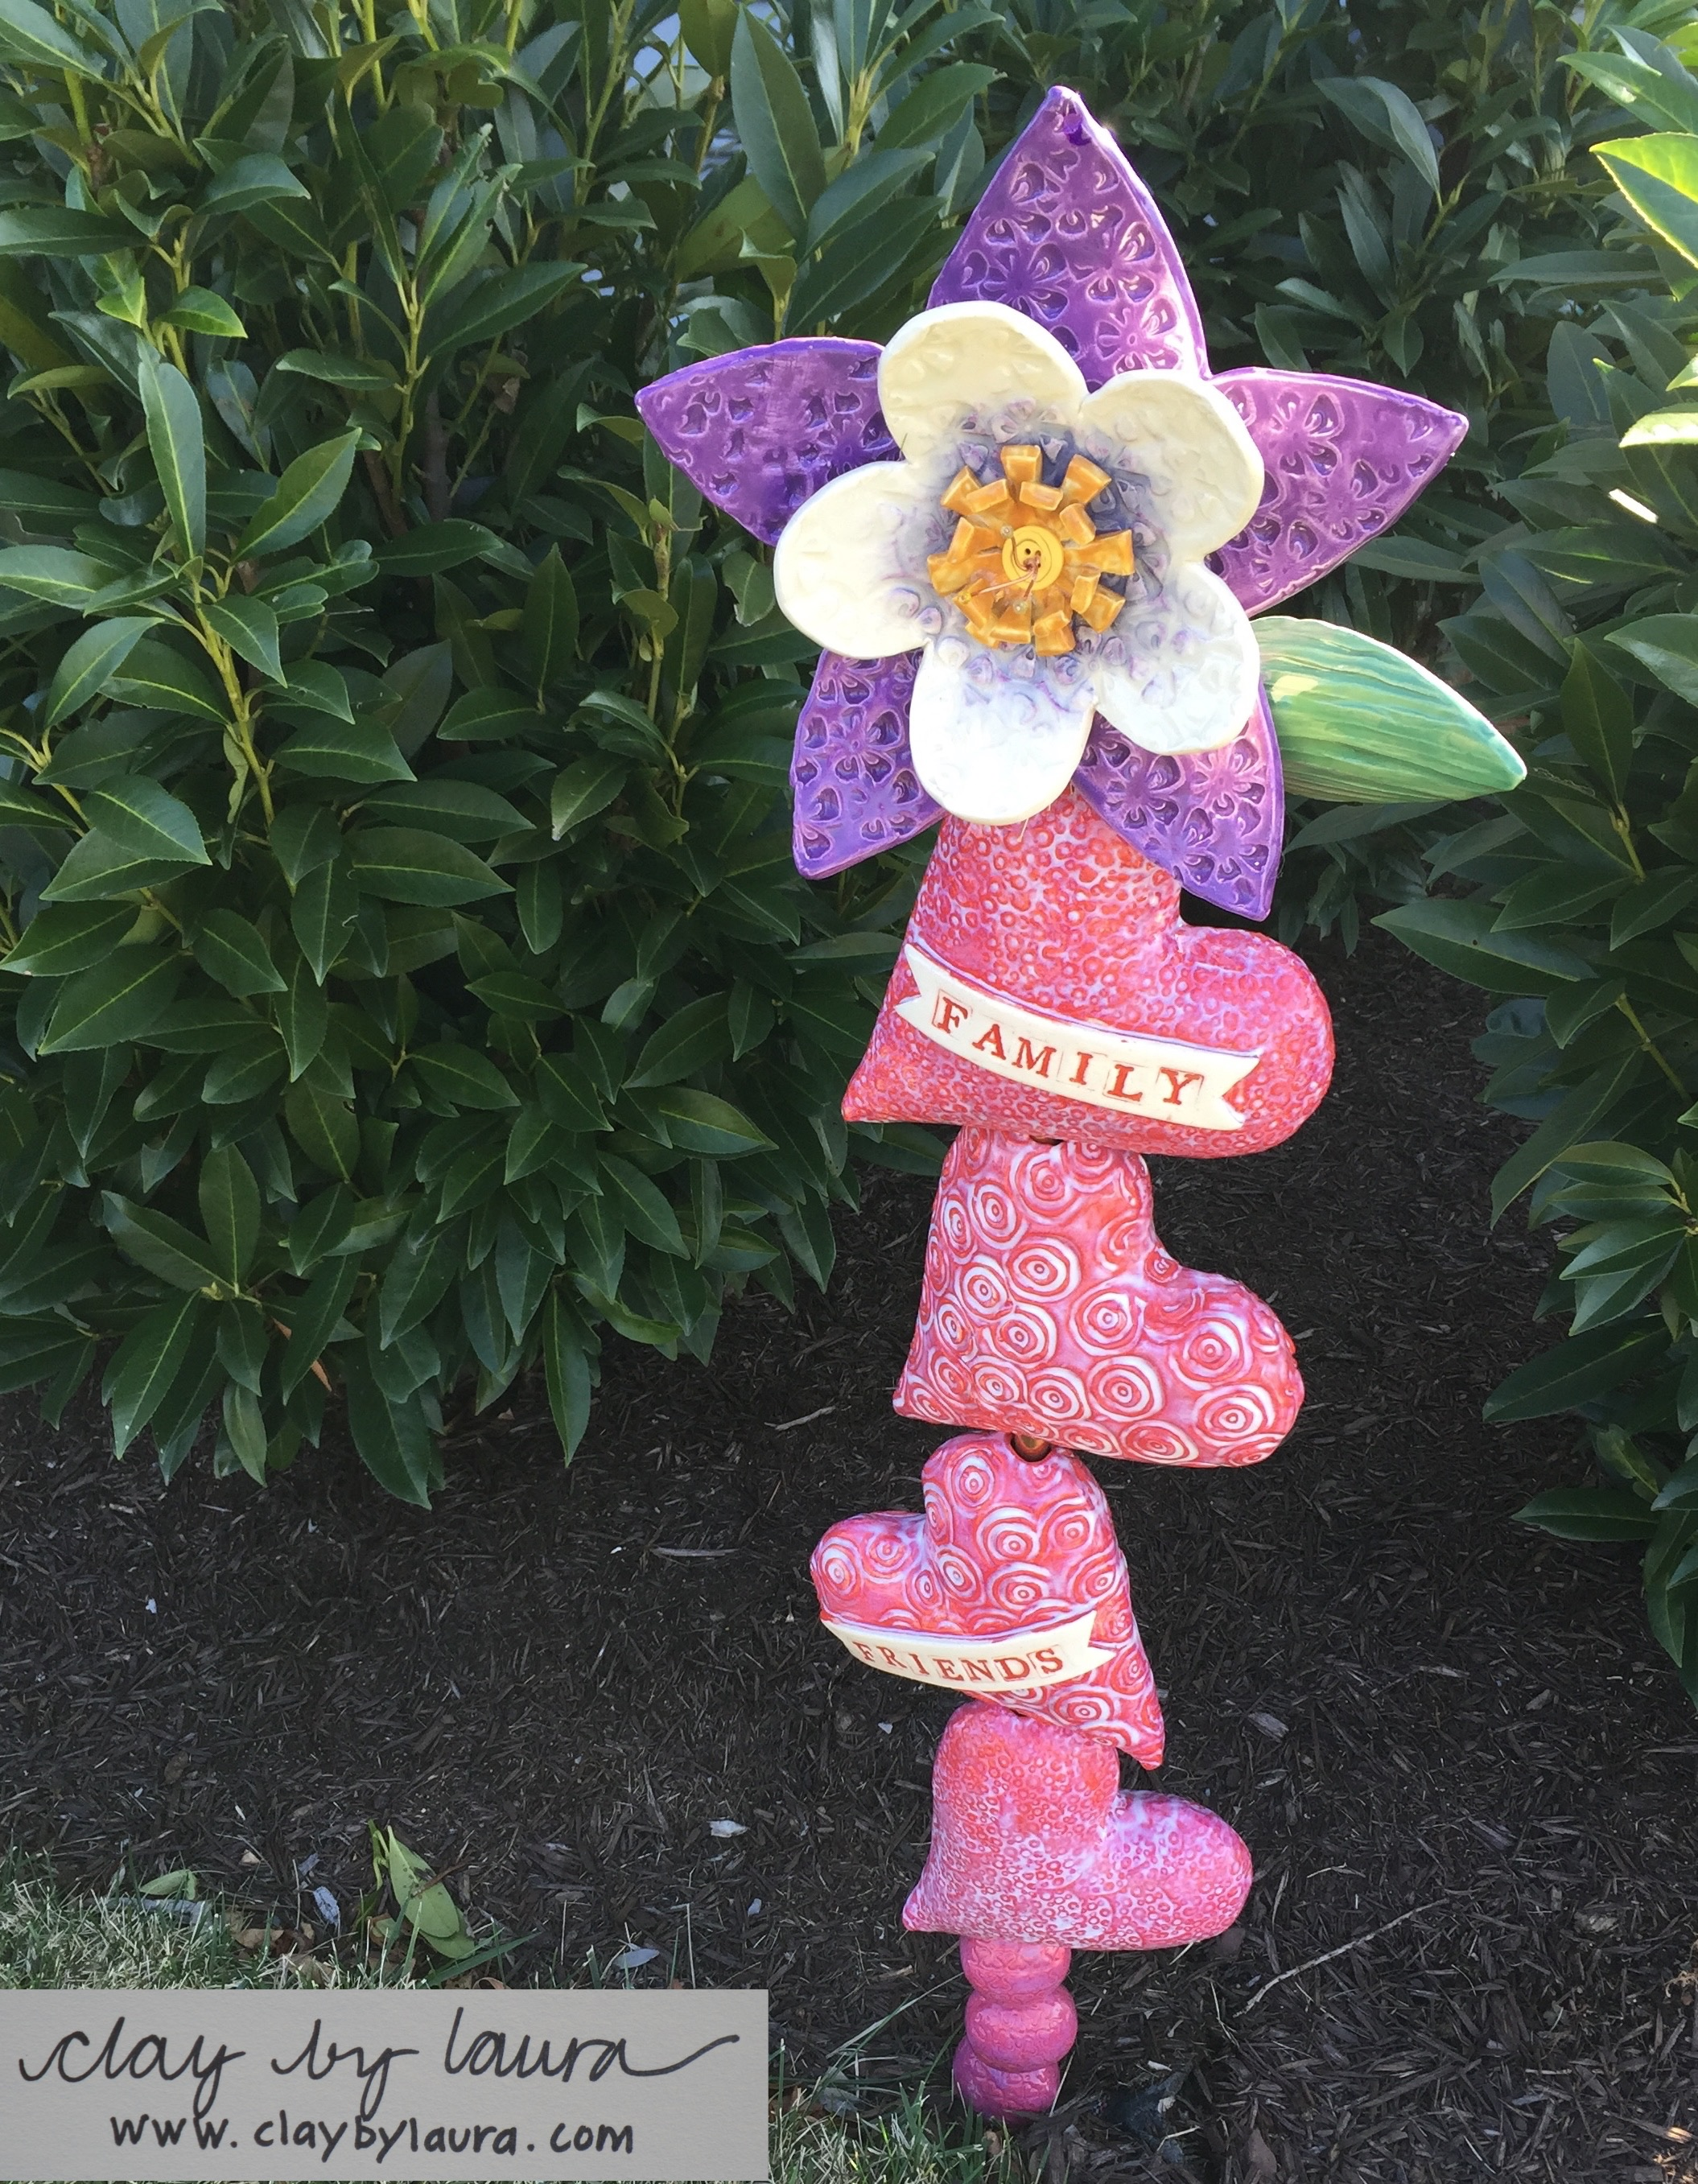 This totem will enhance a garden inColorado. Itfeaturesthe state flower Columbineand several heart shapeswhich hold special meaning to the owner. Totems can be displayed outdoors year-round in all kinds of weather conditions!